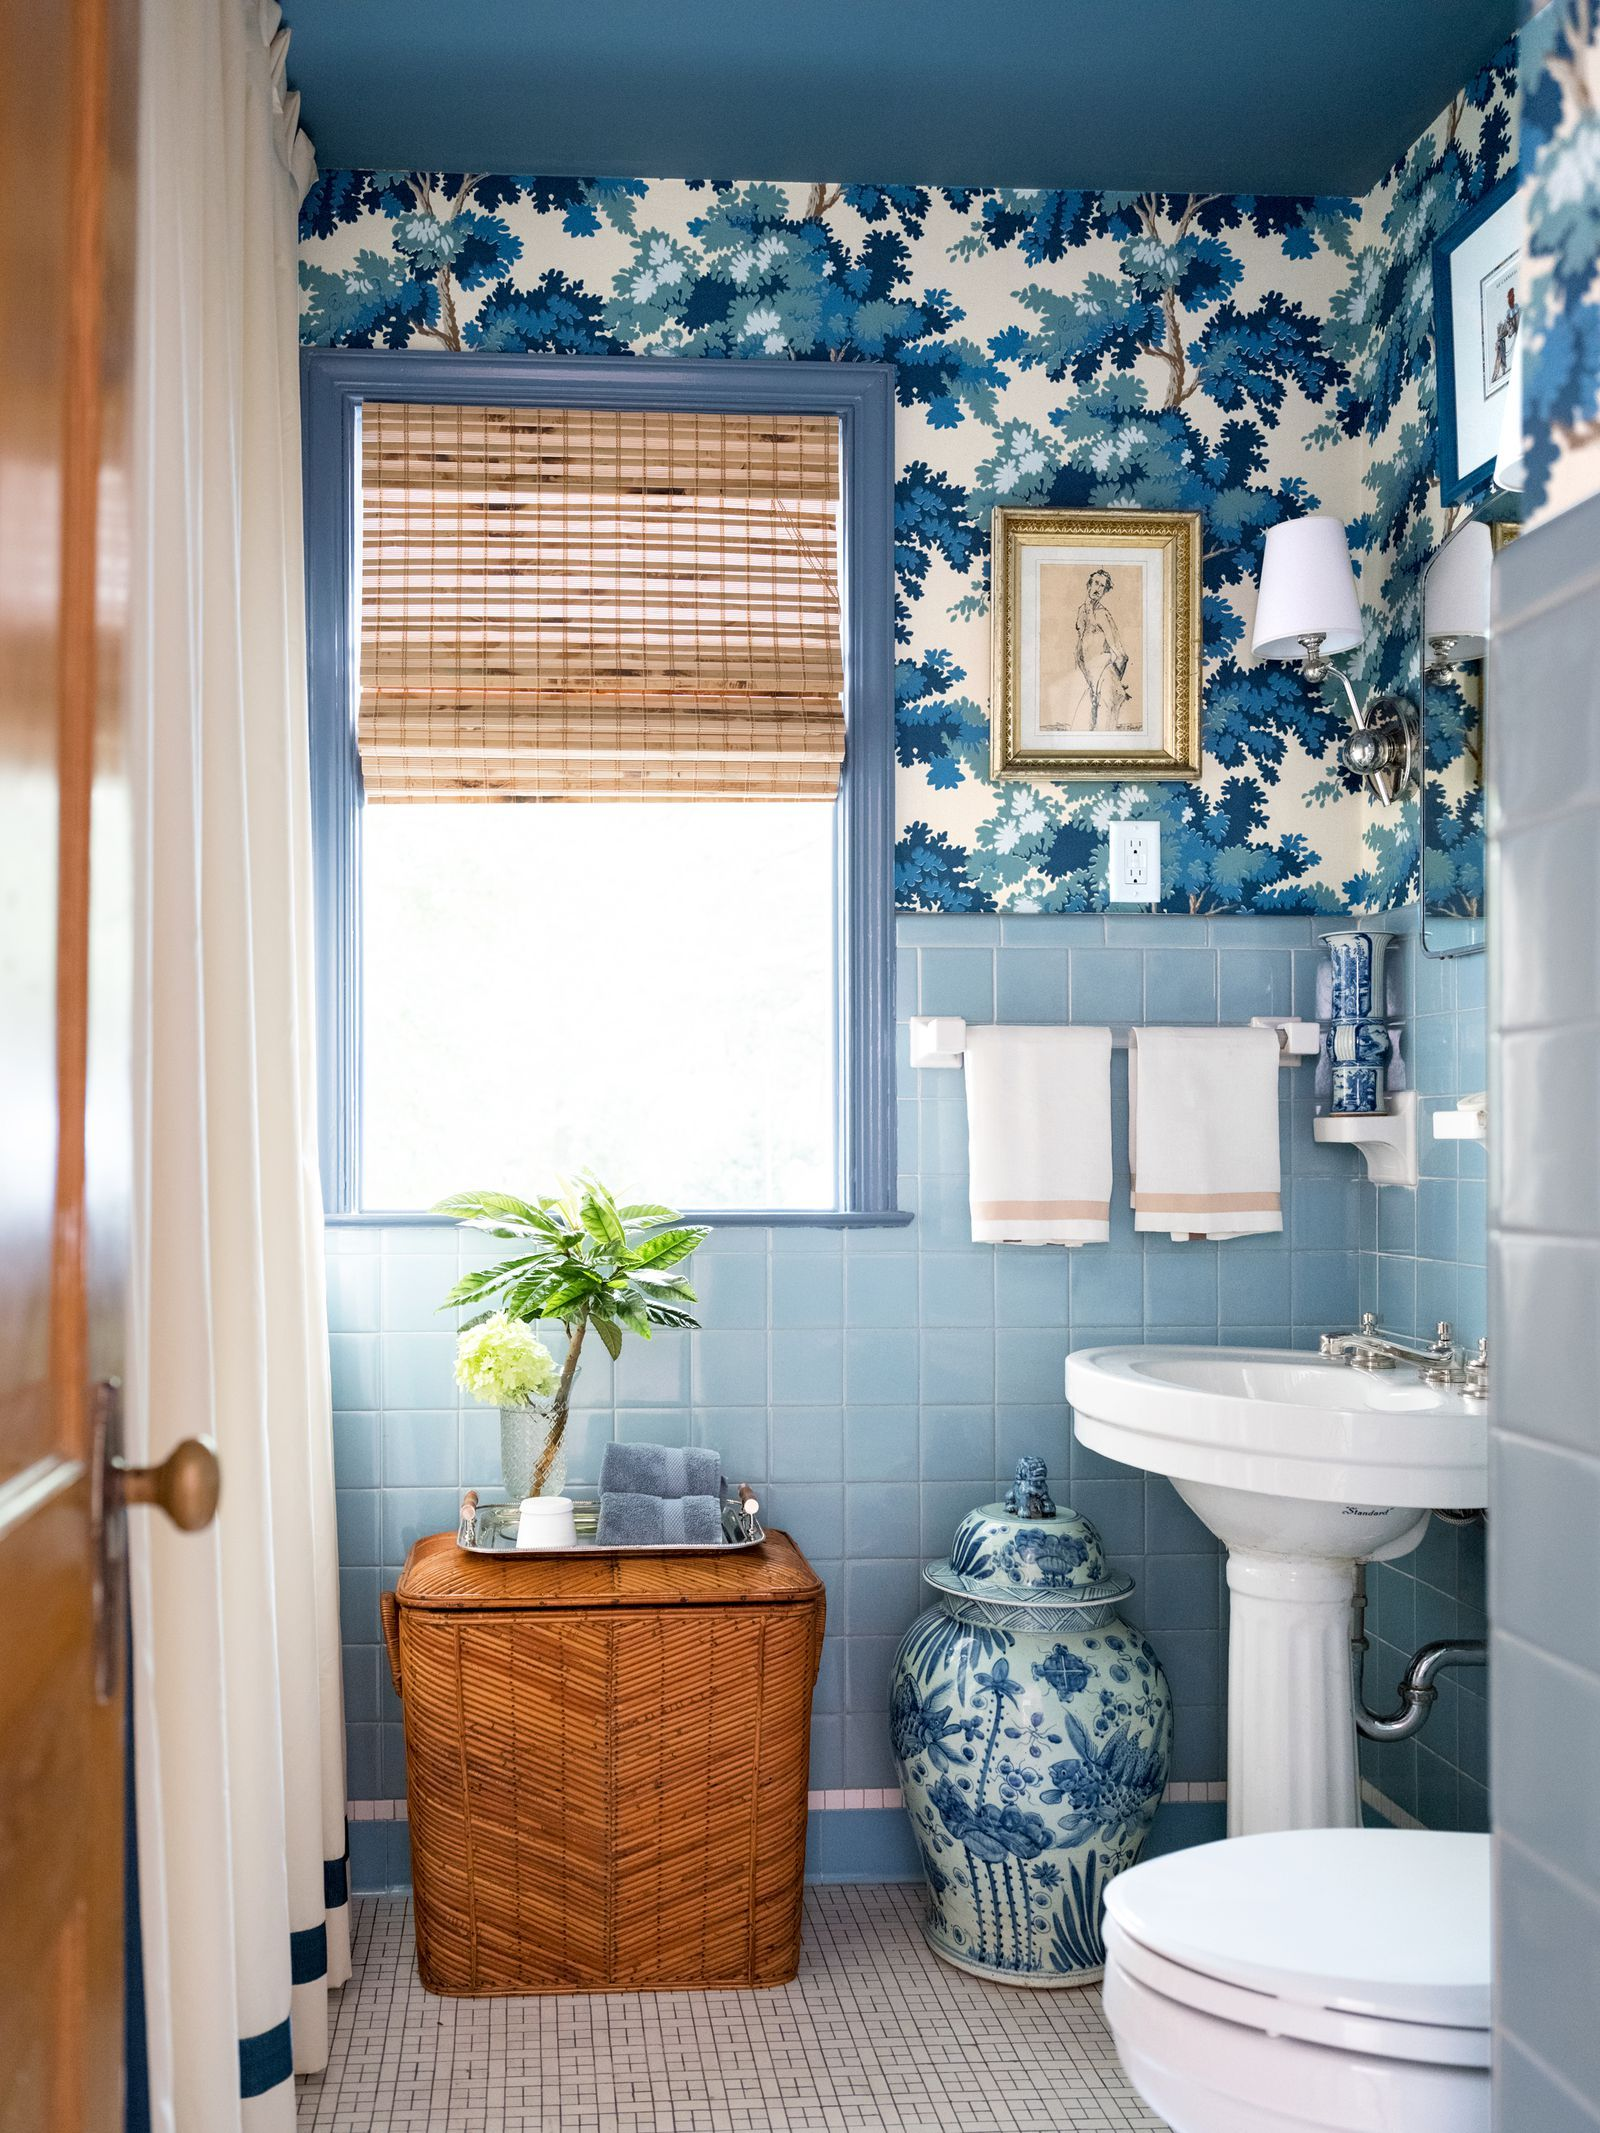 These Chic Wallpapered Bathrooms Will Convince You To Take The Plunge Bathroom Tile Designs Blue Bathroom Tile Retro Bathrooms